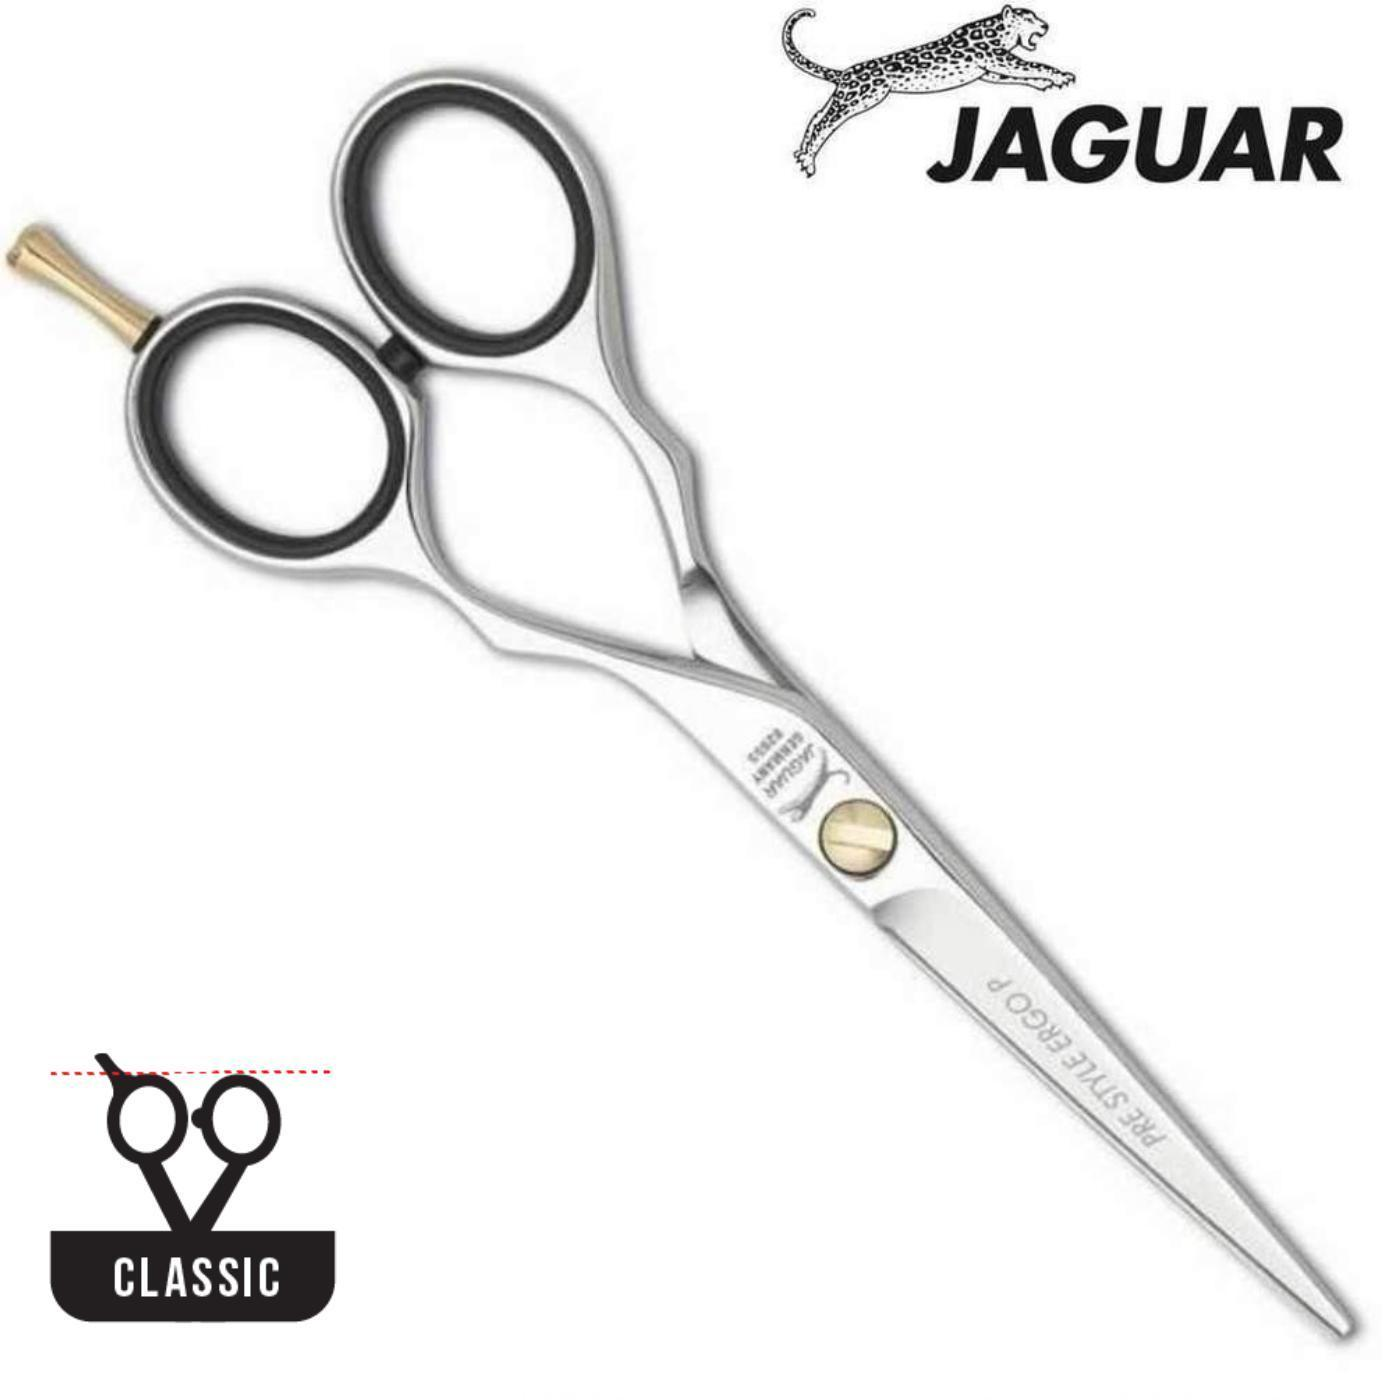 Jaguar Pre Style Ergo Hair Cutting Scissors - Japan Scissors